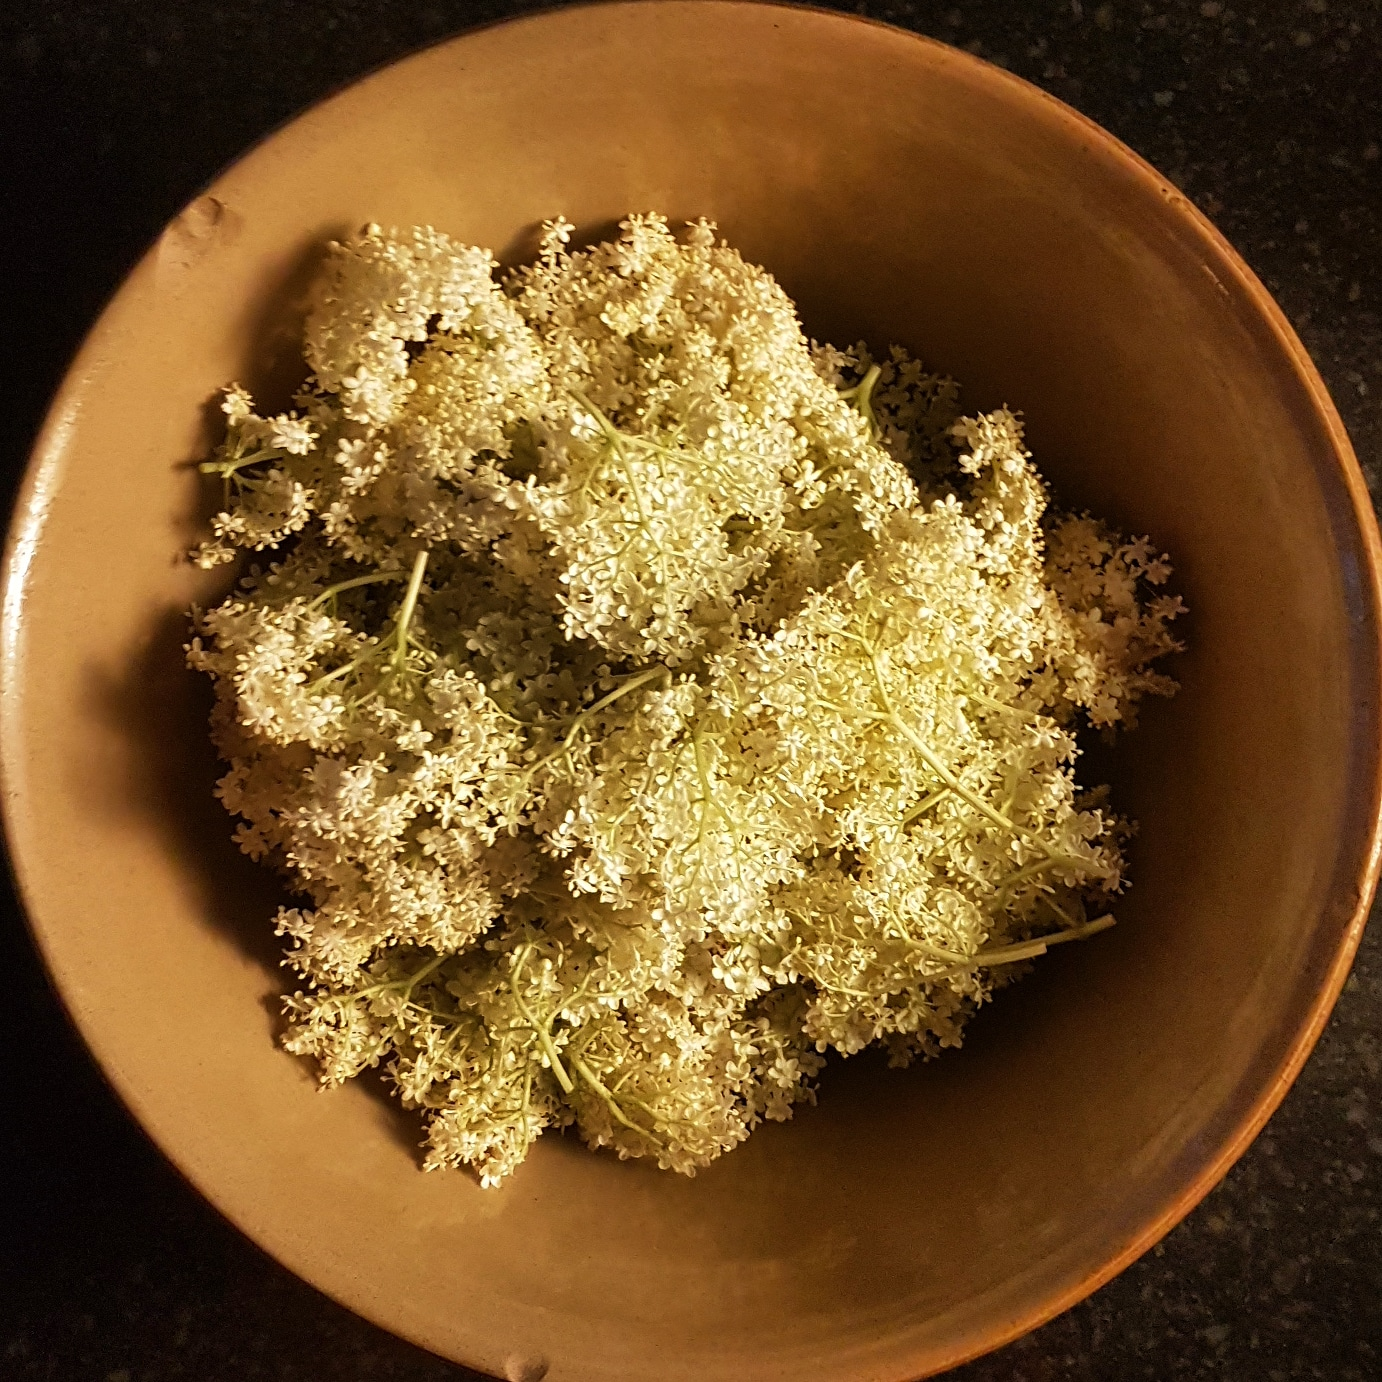 Elderflowers in a bowl